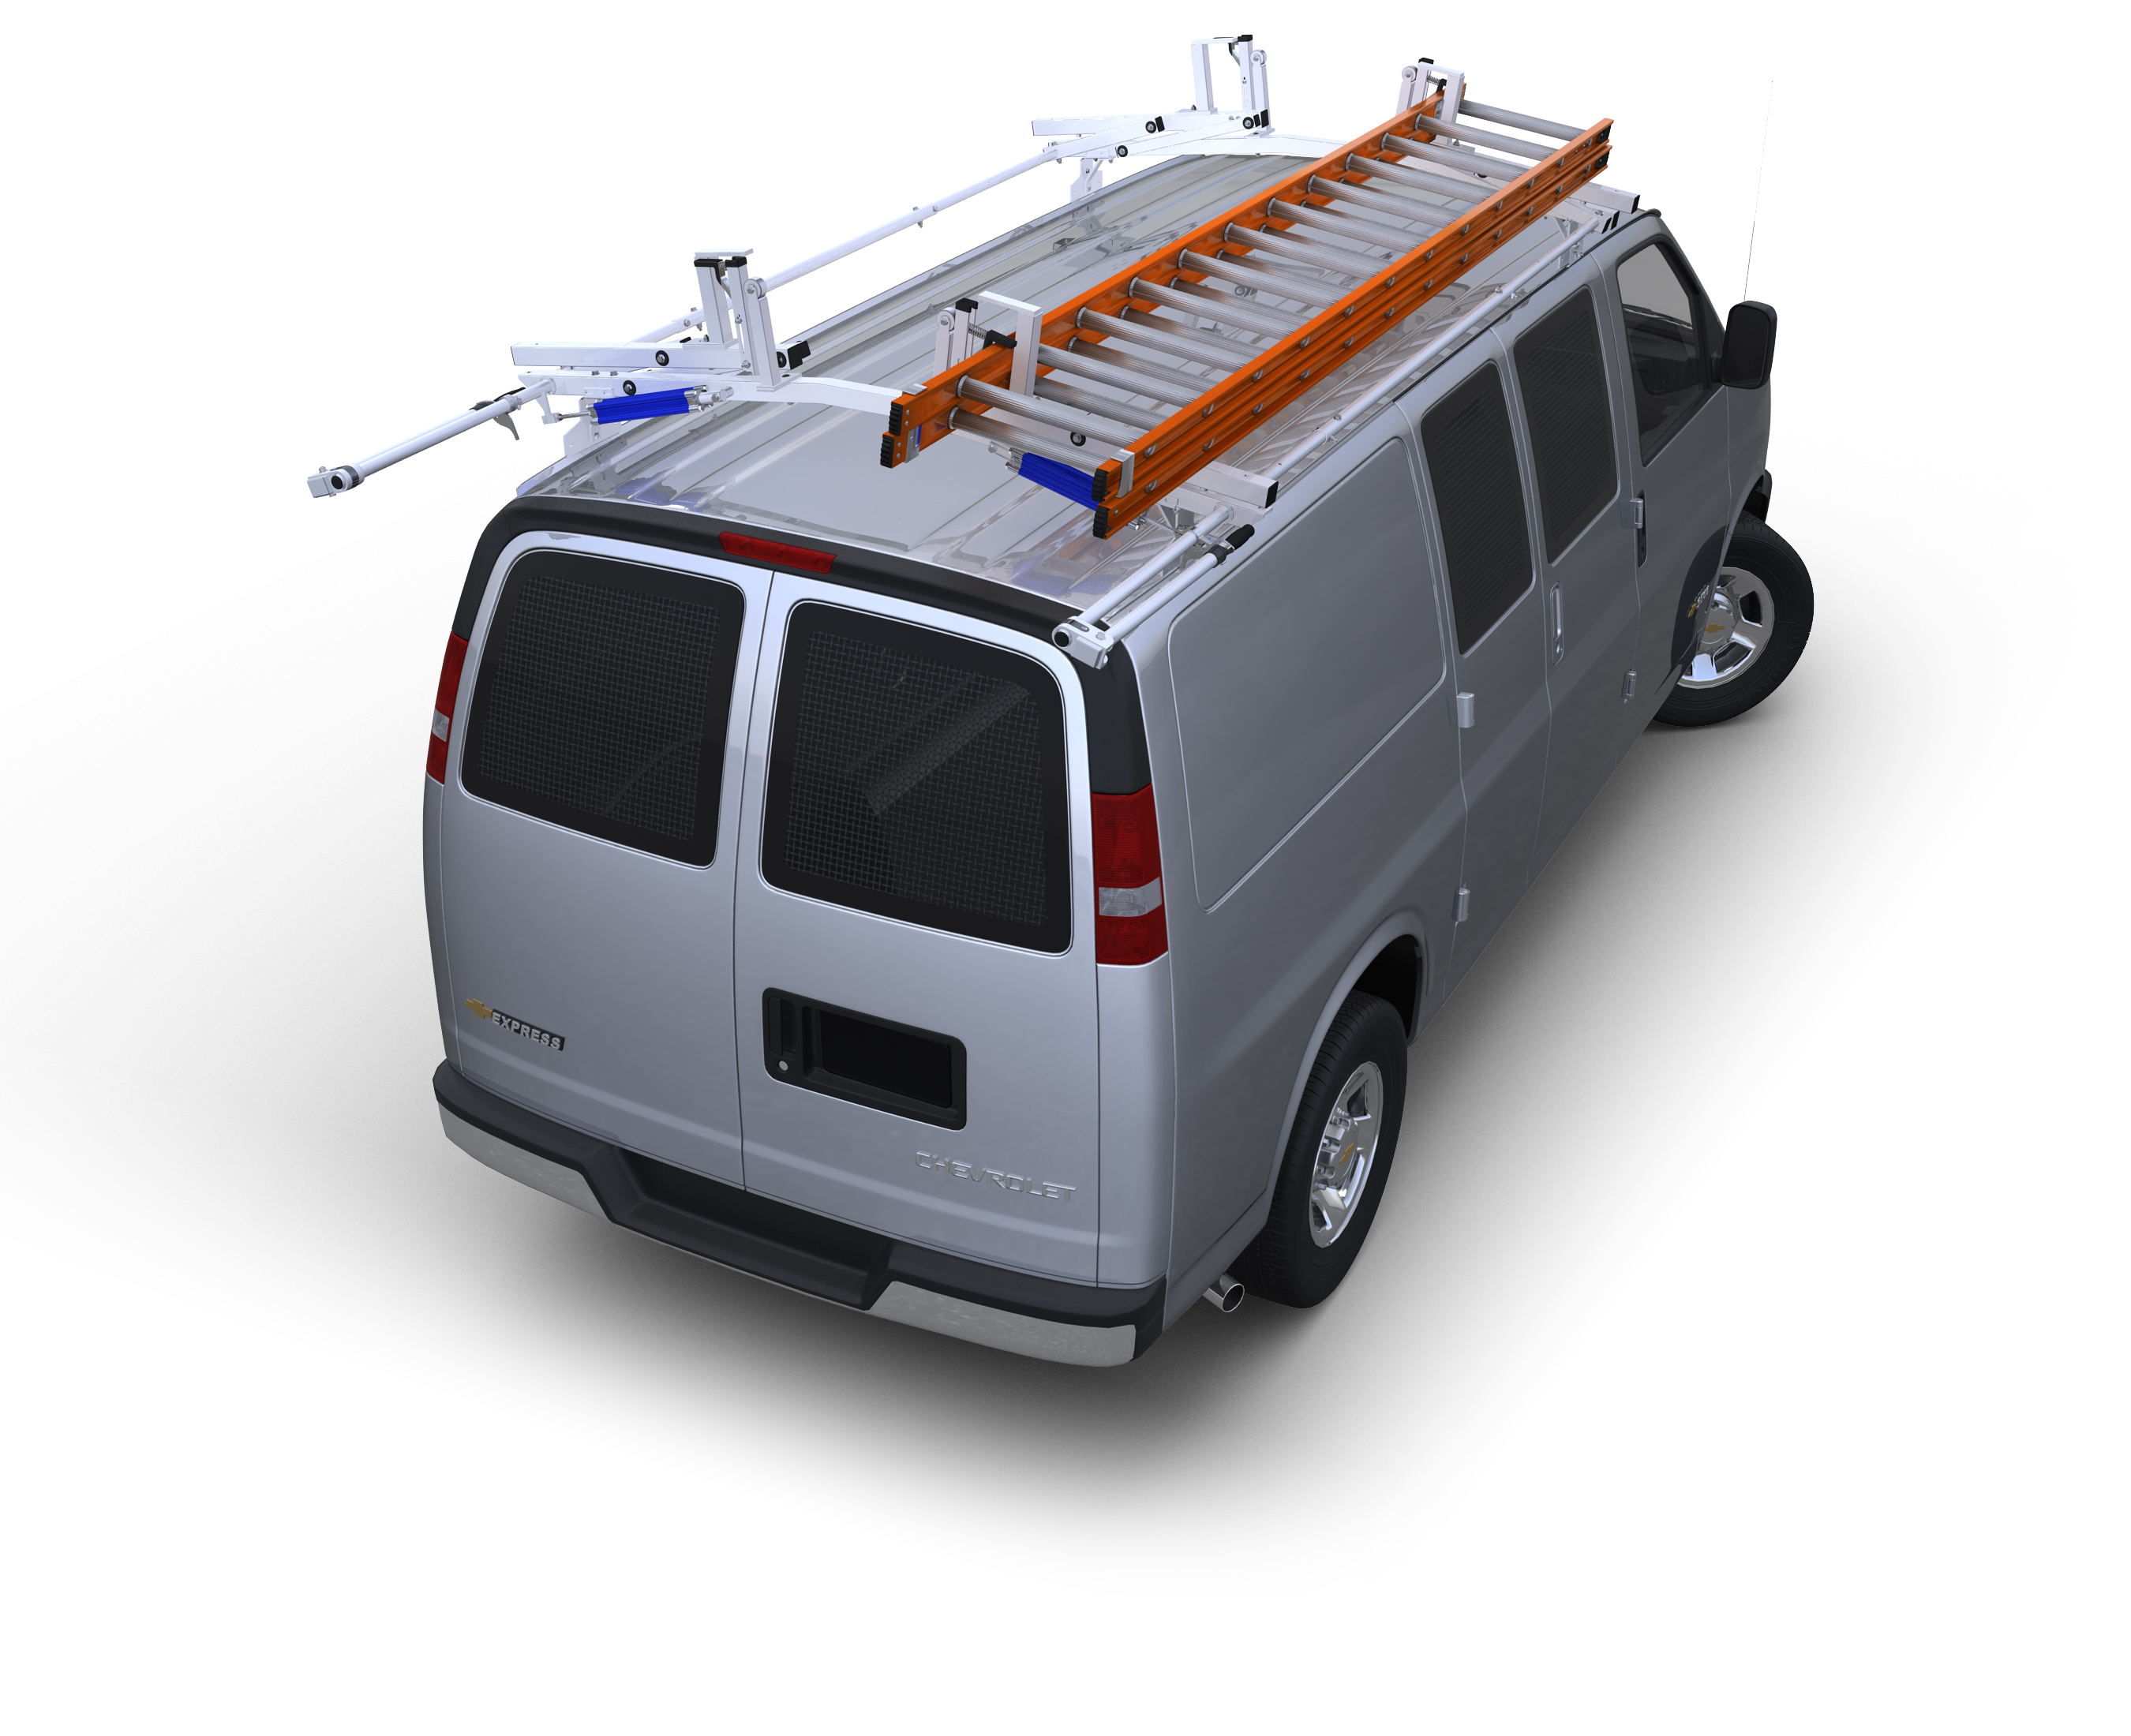 Topper Hot Dip Galvanized 12' Cargo Carrier Rack for the Nissan NV Standard Roof Van